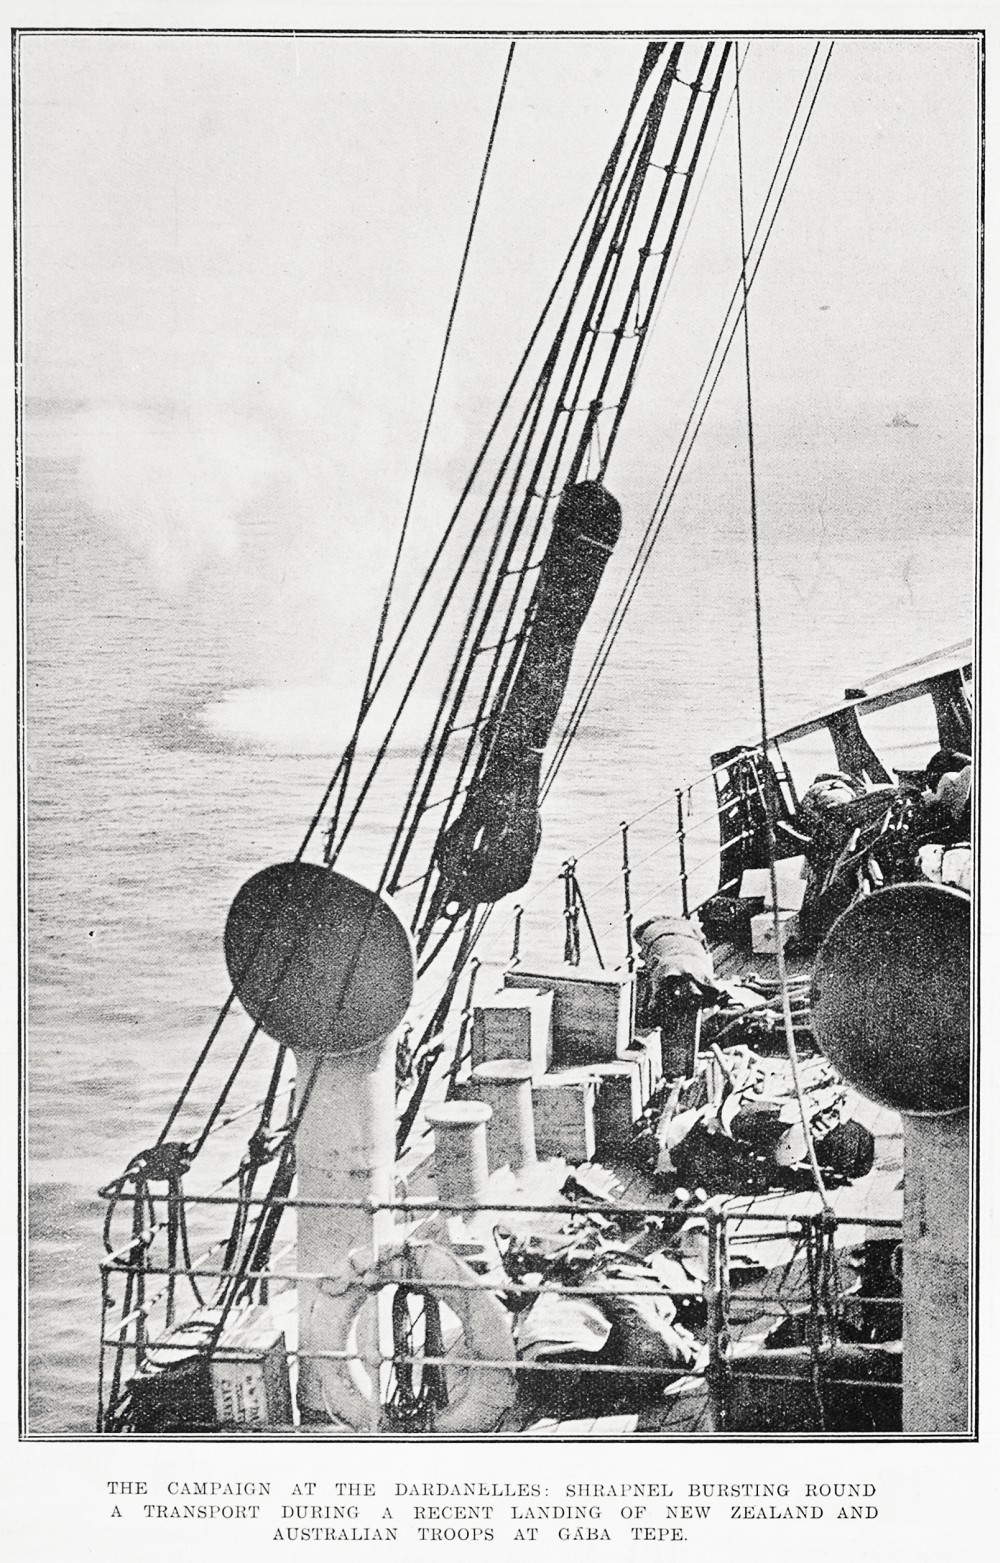 The campaign at the Dardanelles: shrapnel bursting round a transport during a recent landing of New Zealand and Australian troops at Gaba Tepe. - Auckland Libraries